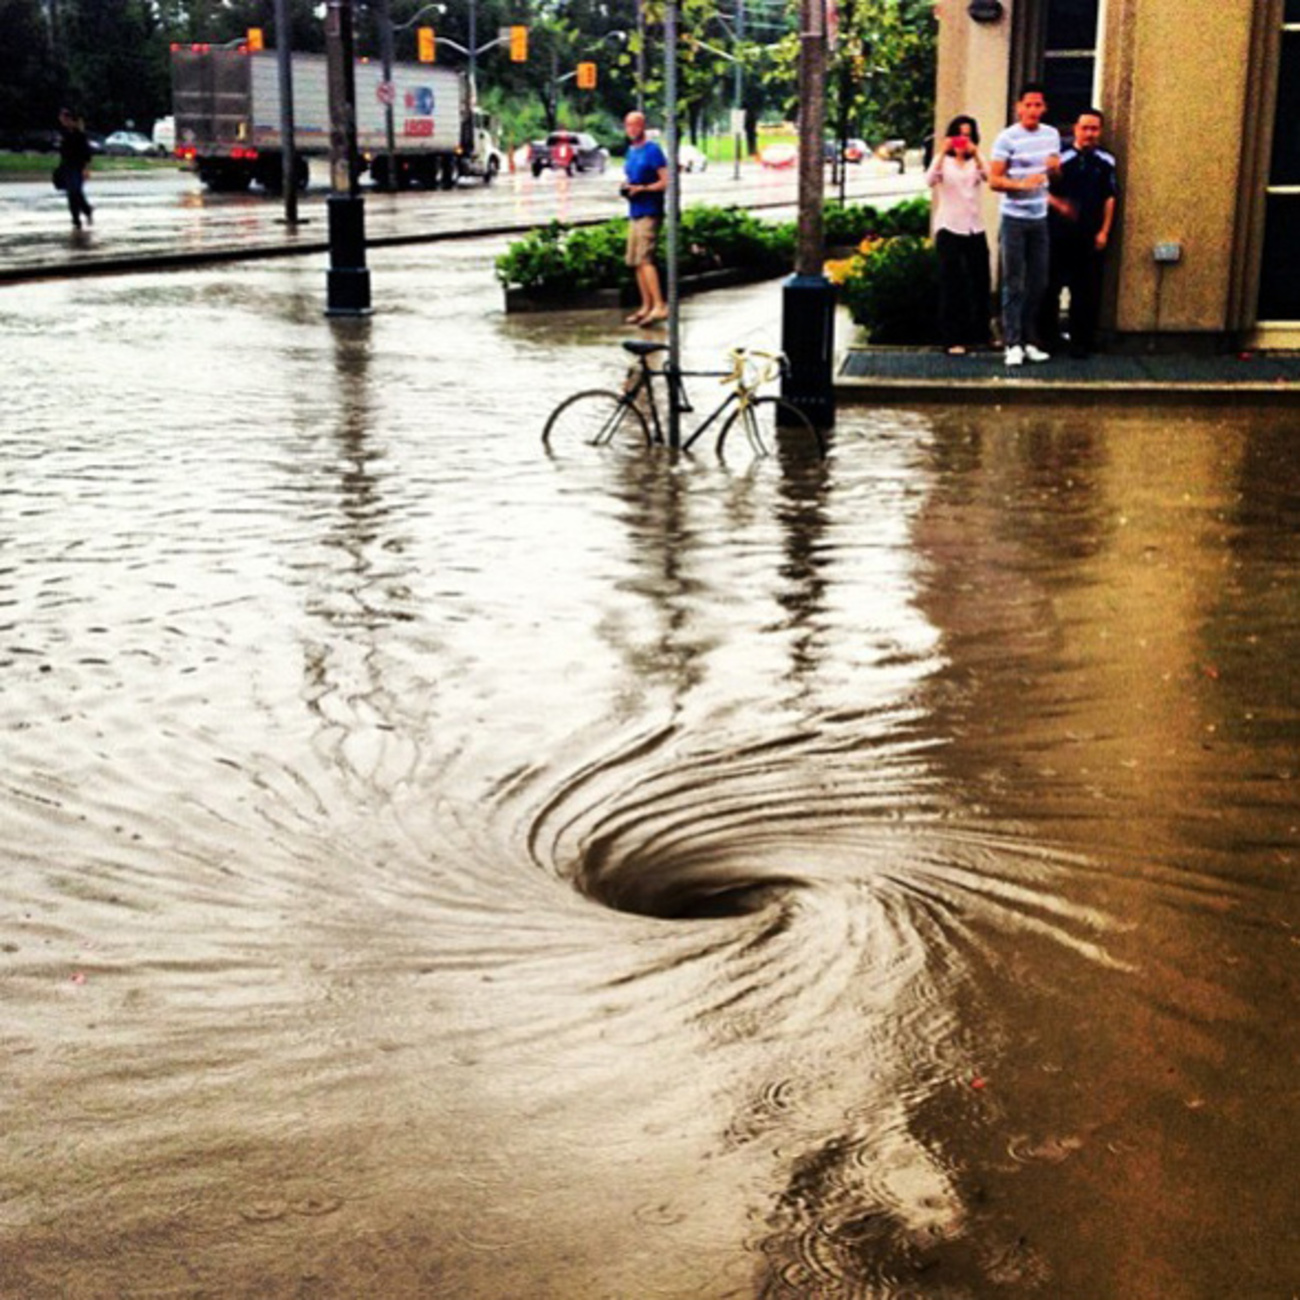 What the Toronto floods looked like on Instagram